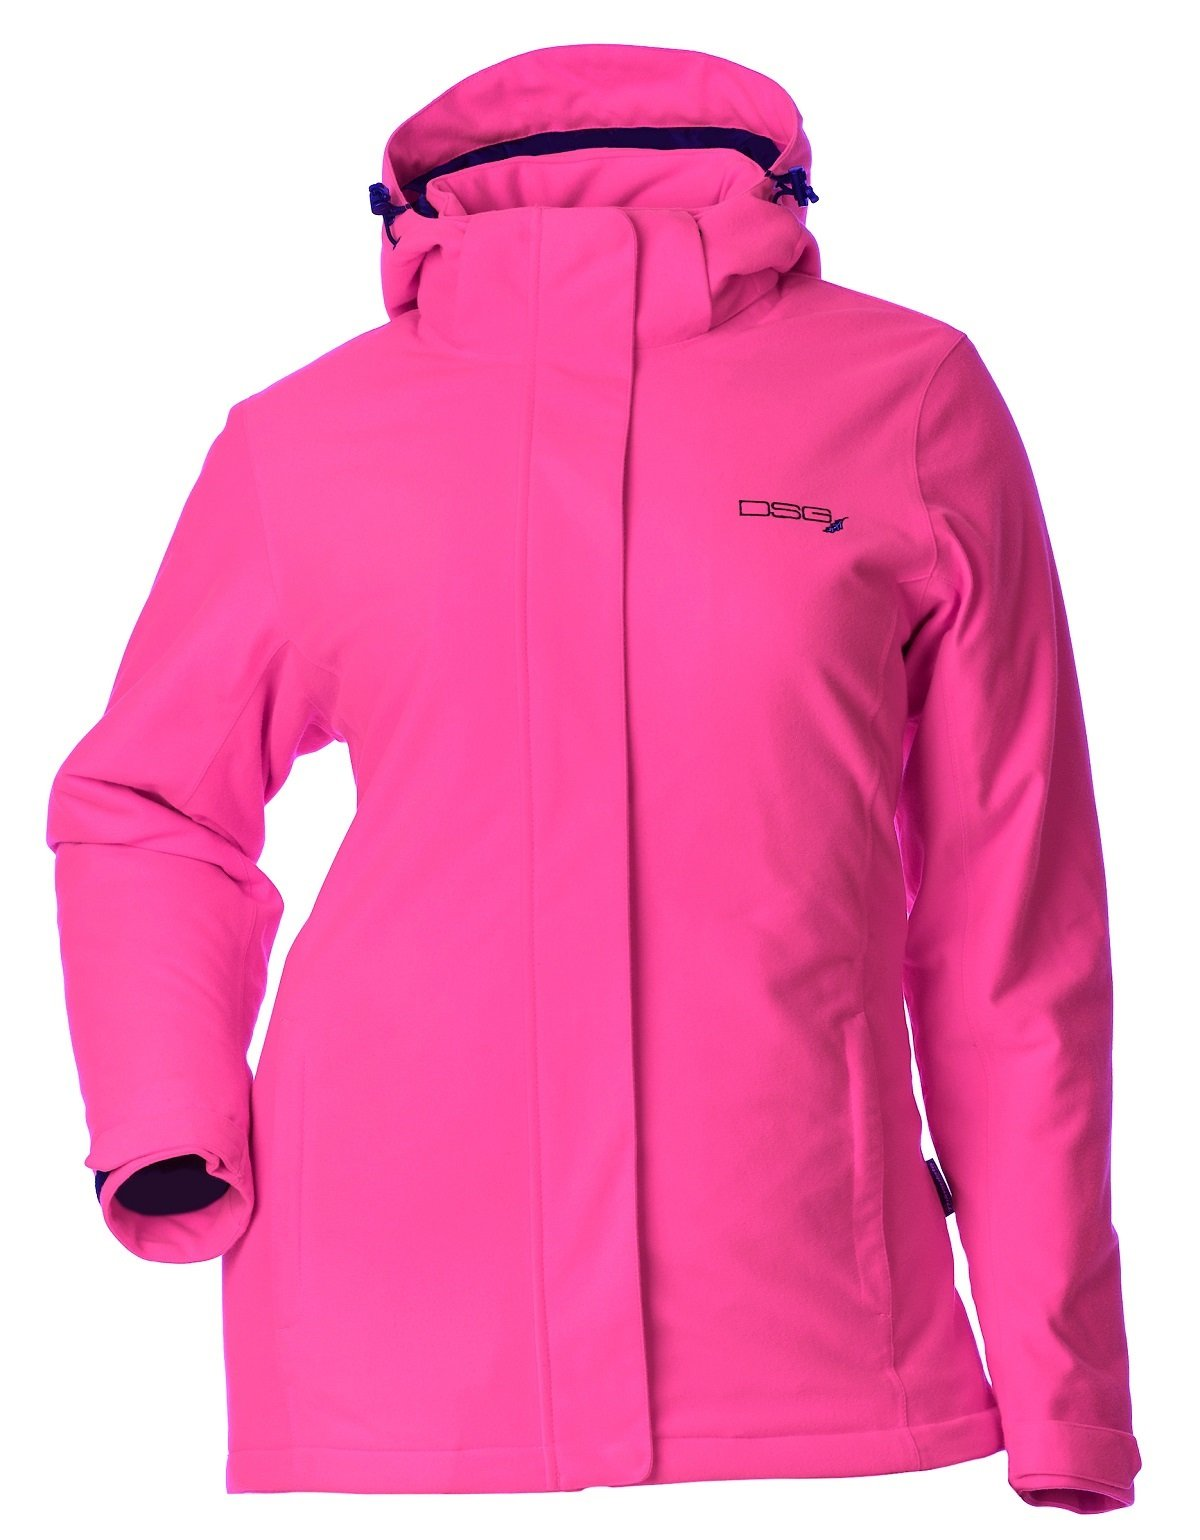 DSG Outerwear Addie Hunting Jacket, Blaze Pink, 3X-Large by DSG Outerwear